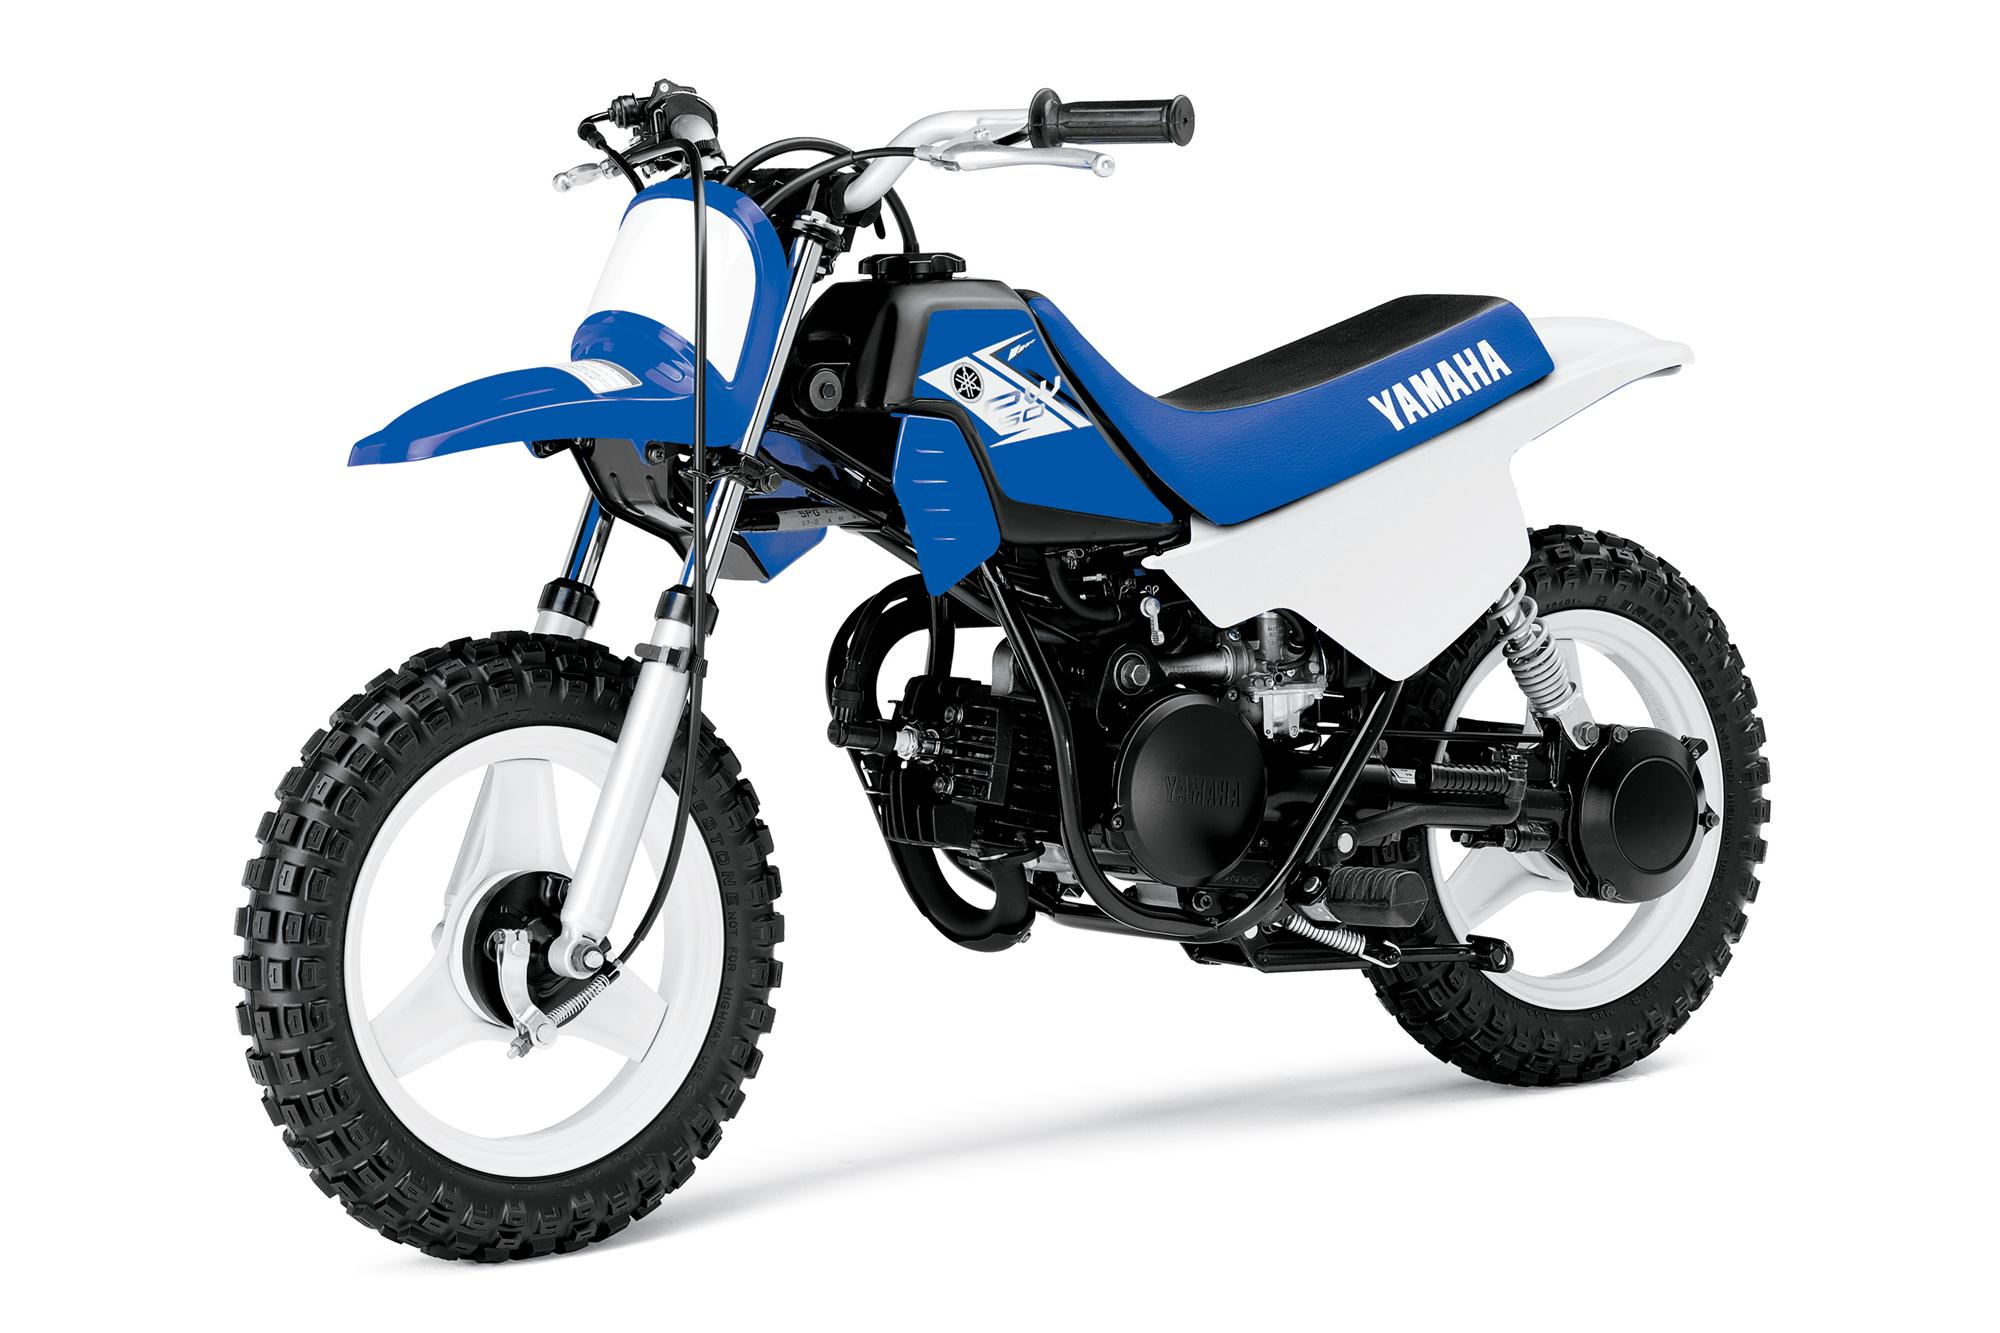 2013 Yamaha Pw50 The Small Bike For Young Champs